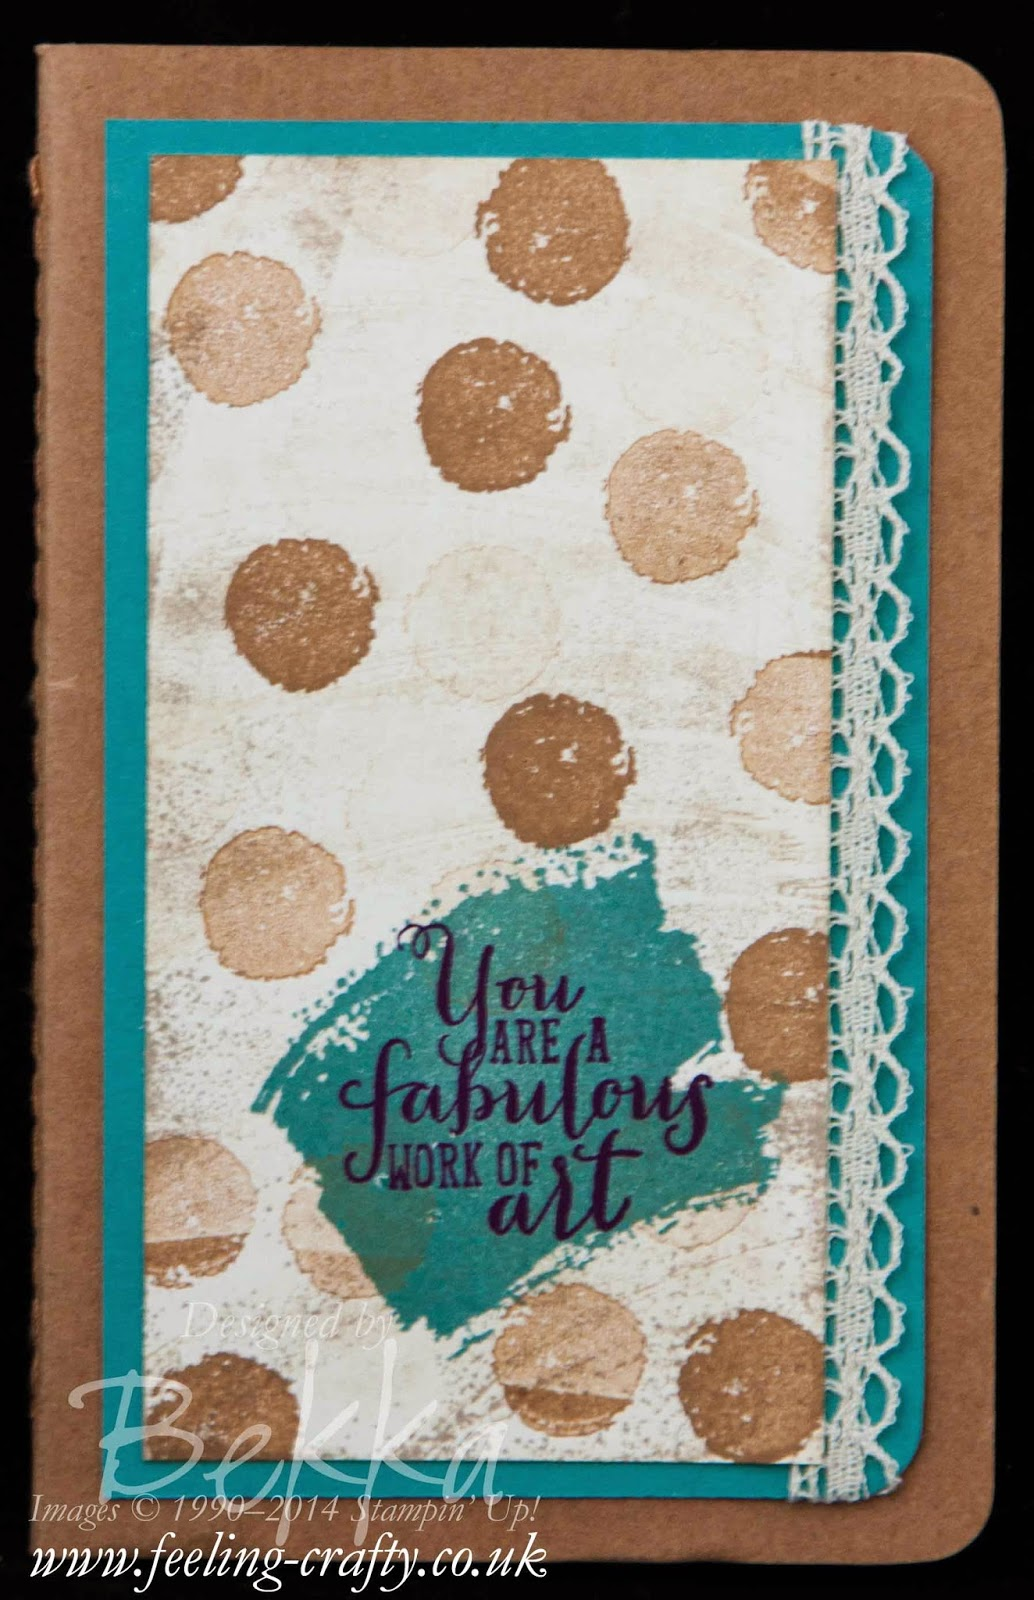 Work of Art Class Notebook by Stampin' Up! UK Independent Demonstrator Bekka Prideaux